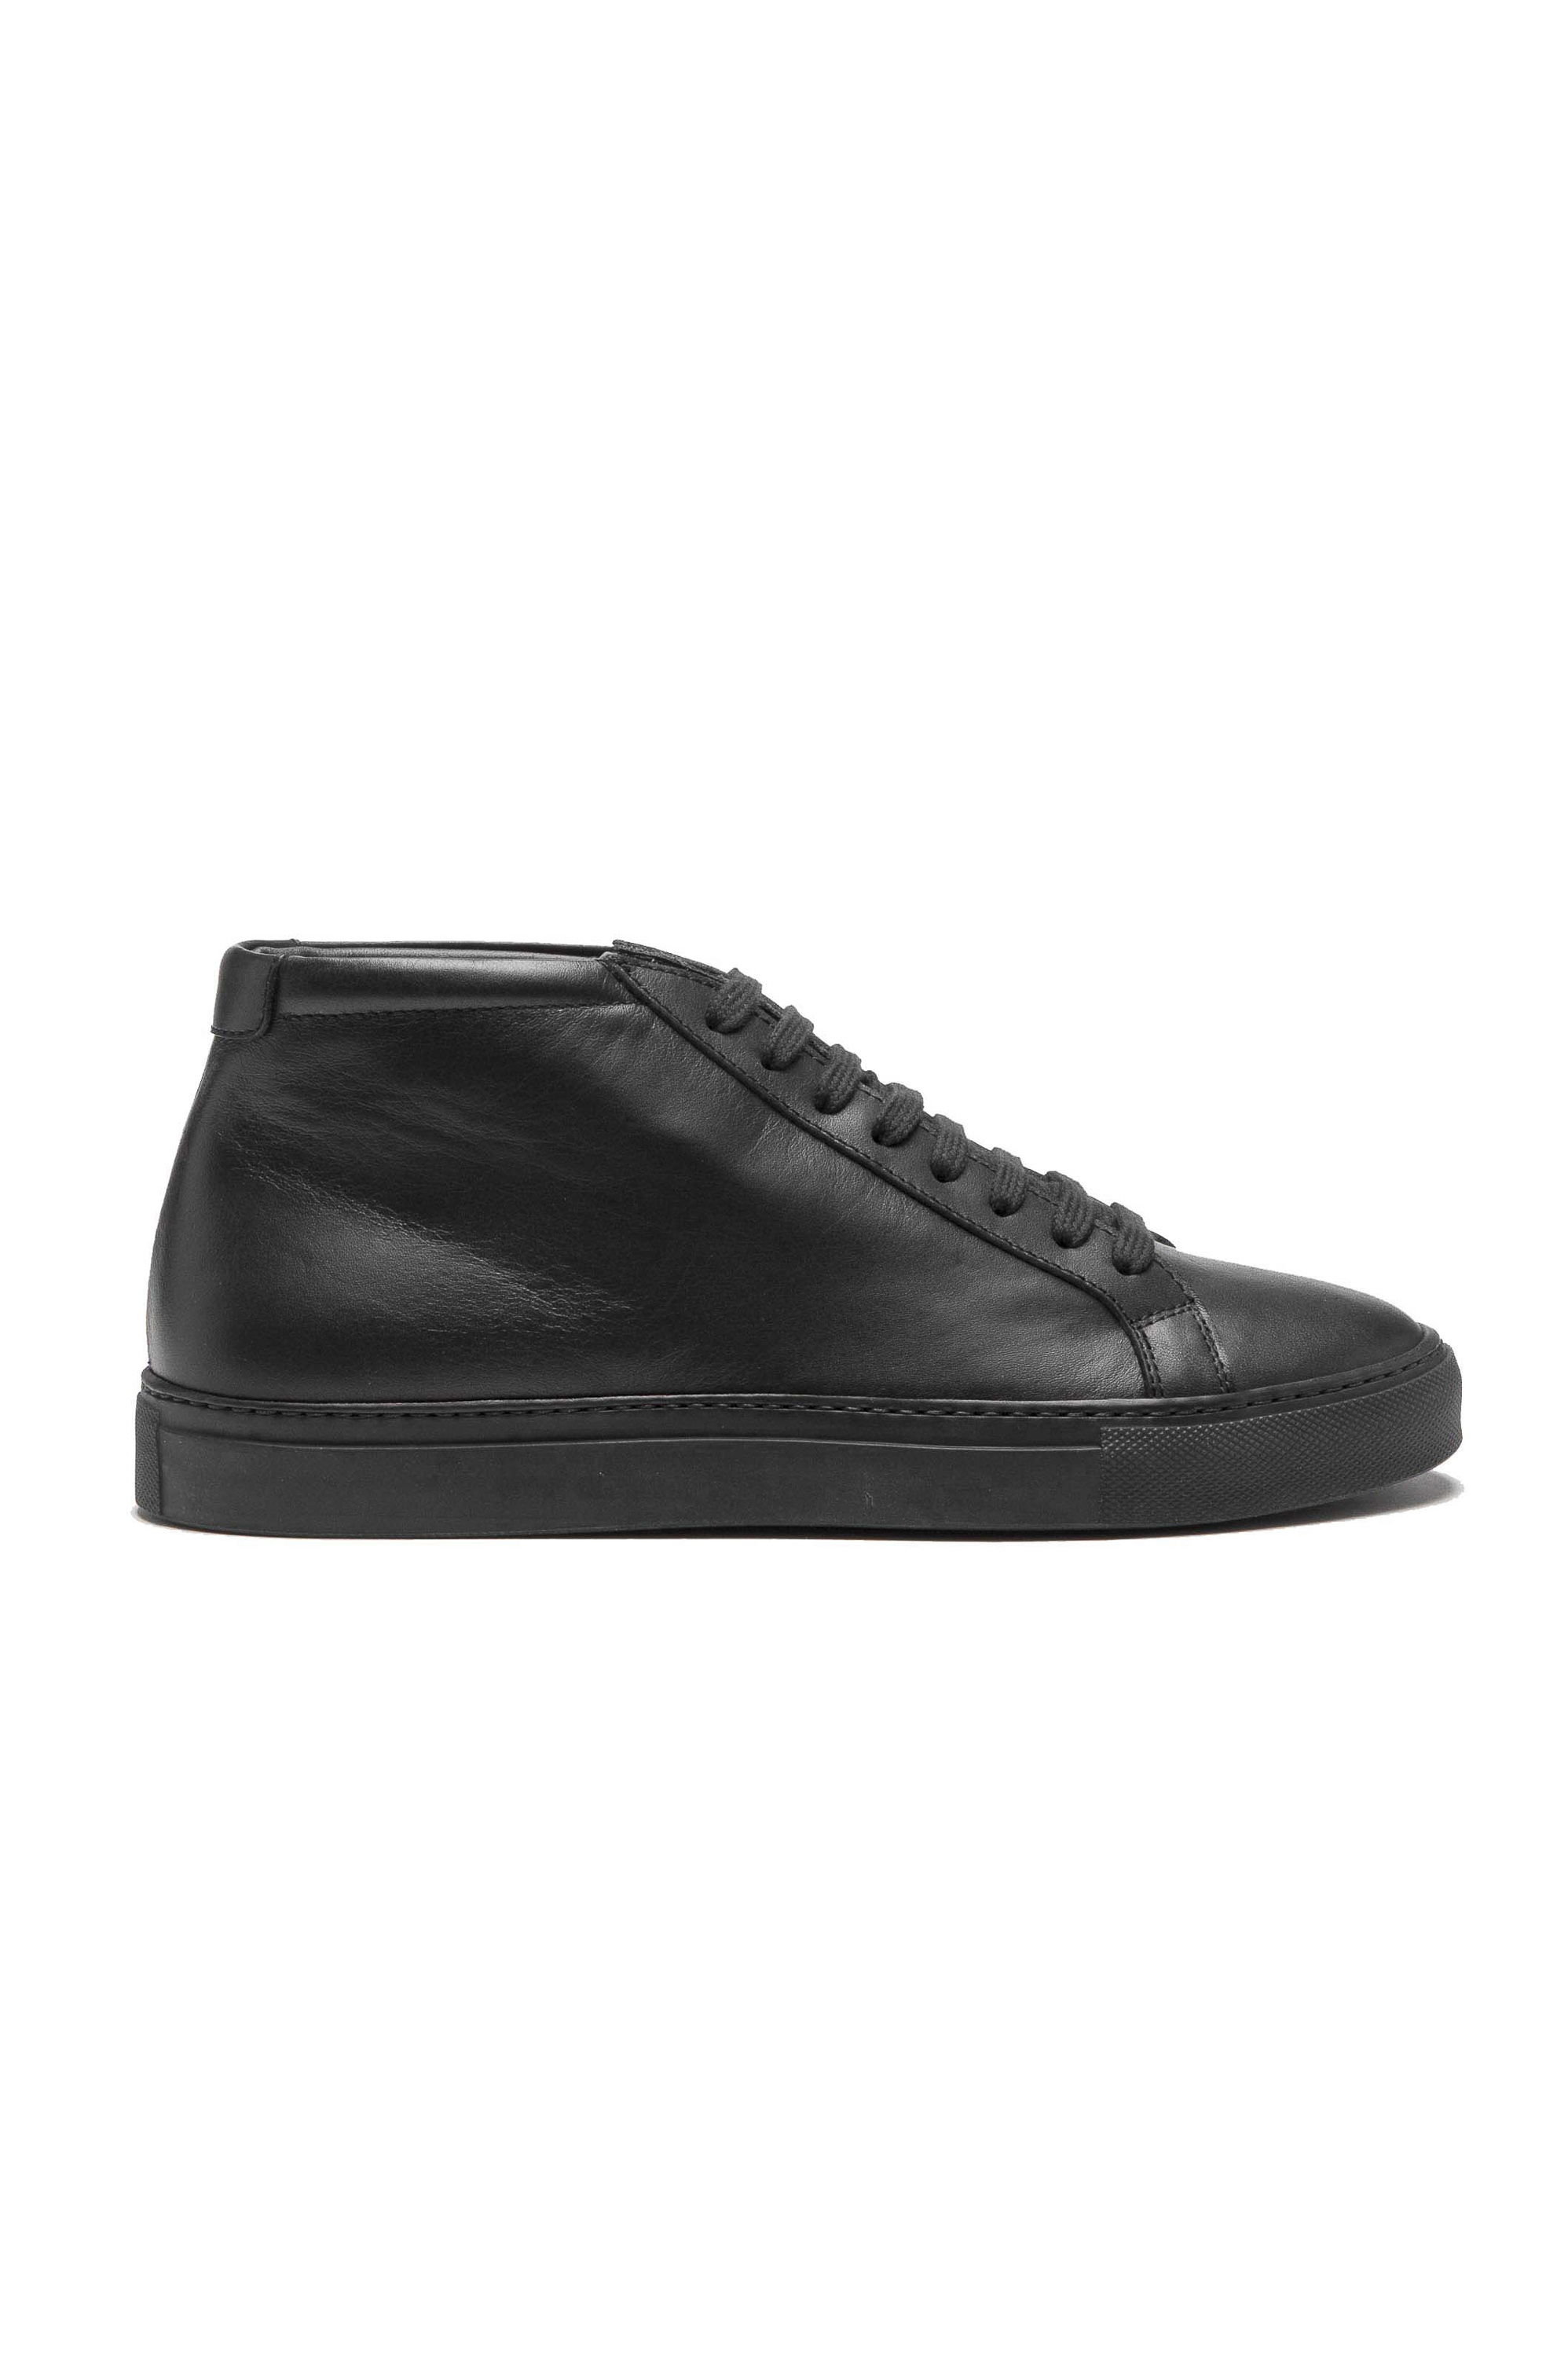 SBU 01524_19AW Mid top lace up sneakers in black calfskin leather 01